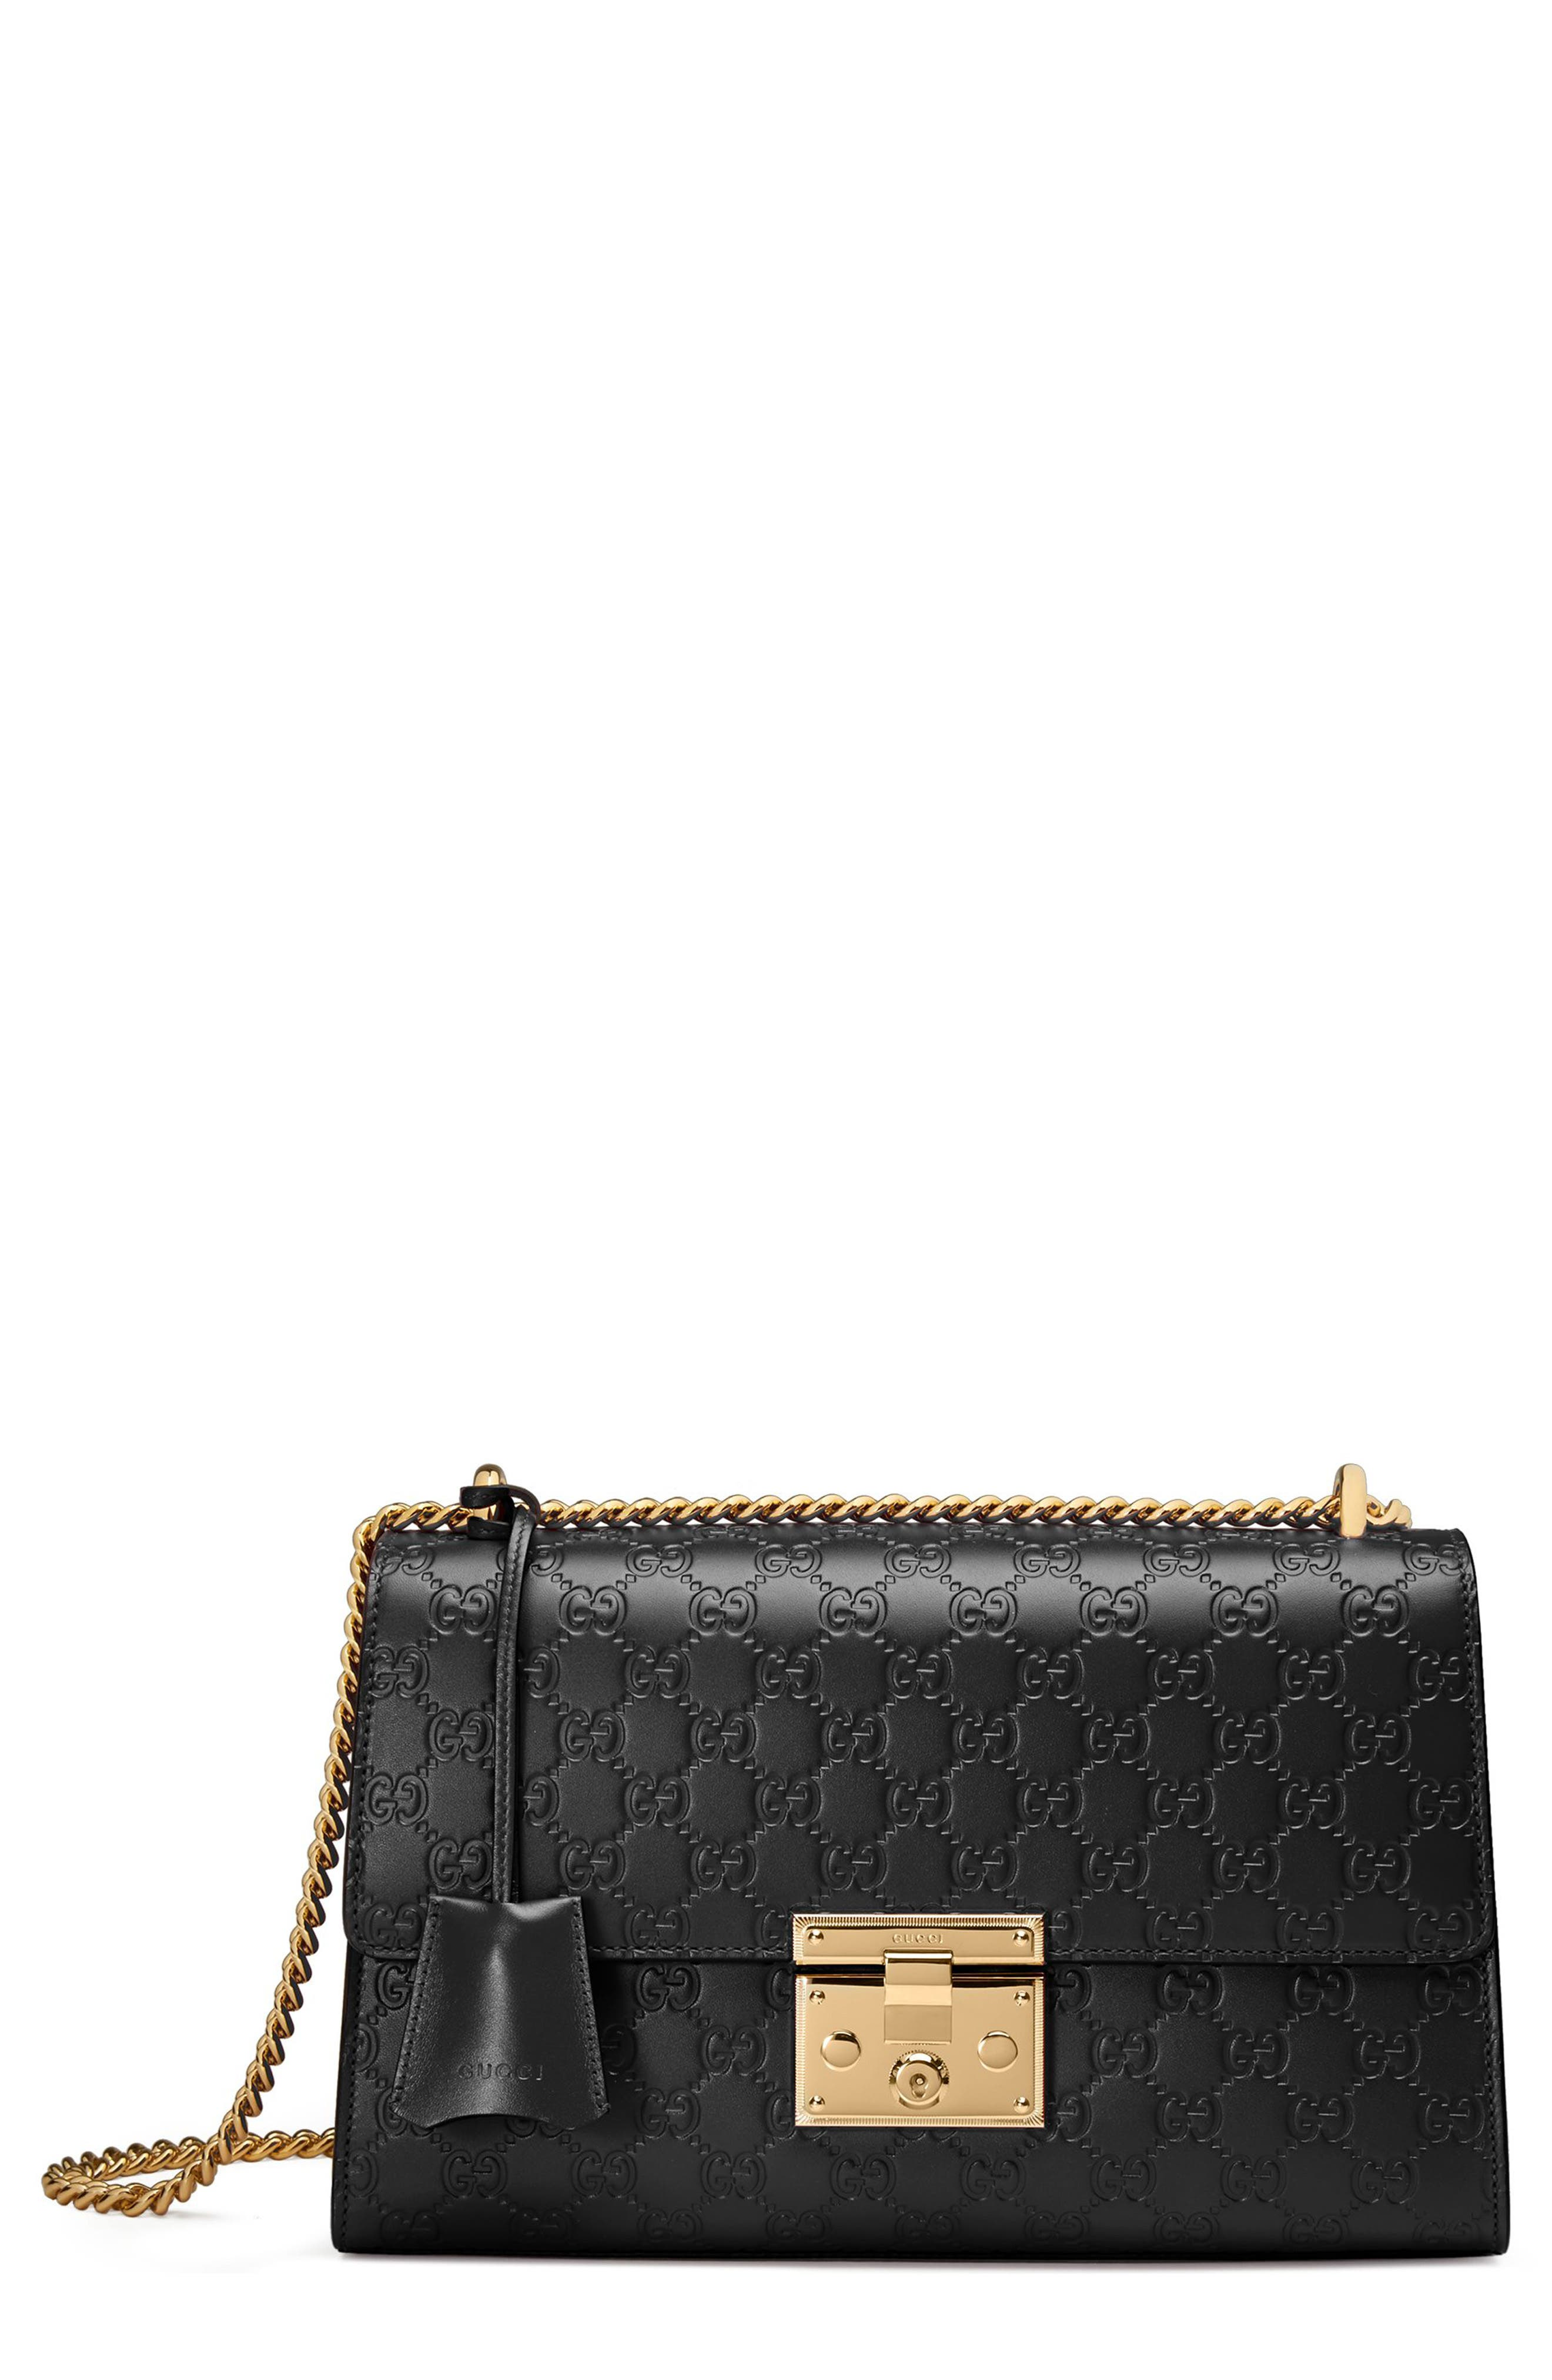 GUCCI, Medium Padlock Signature Leather Shoulder Bag, Main thumbnail 1, color, NERO